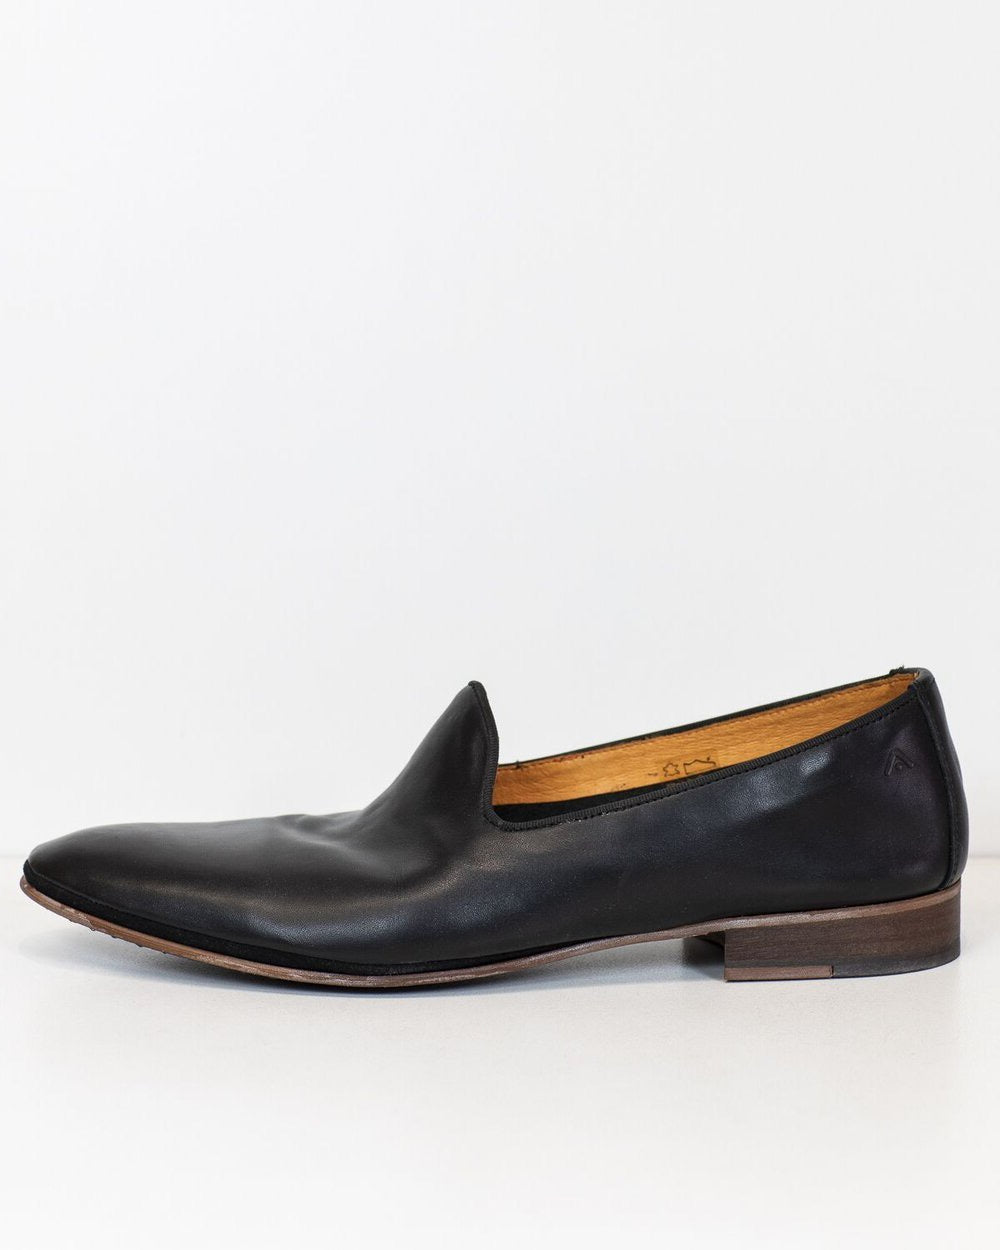 Ambitious Loafer Black Leather